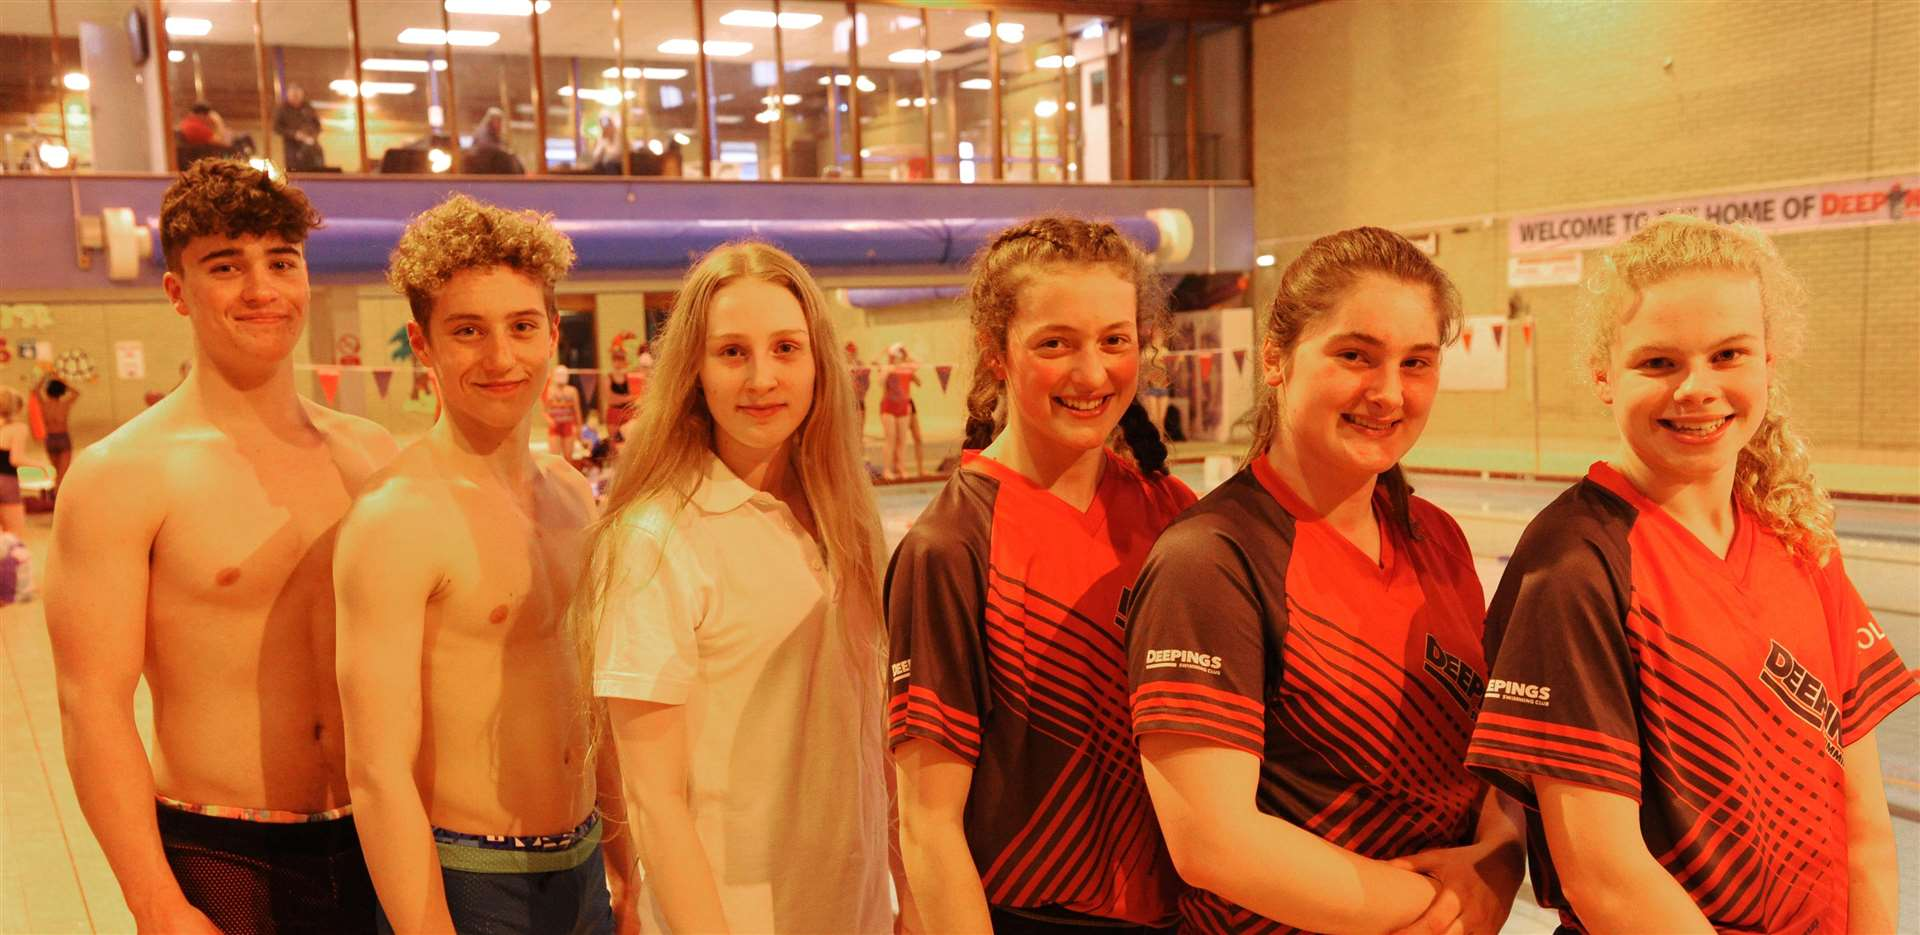 The East Midlands squad. From left – Tom Adams, Louis Metselaar, Bailie Harrison, Bethany Eagle-Brown, Jessie Spooner and Holly Leggott (missing Isabel Spinley and Tom Neal).